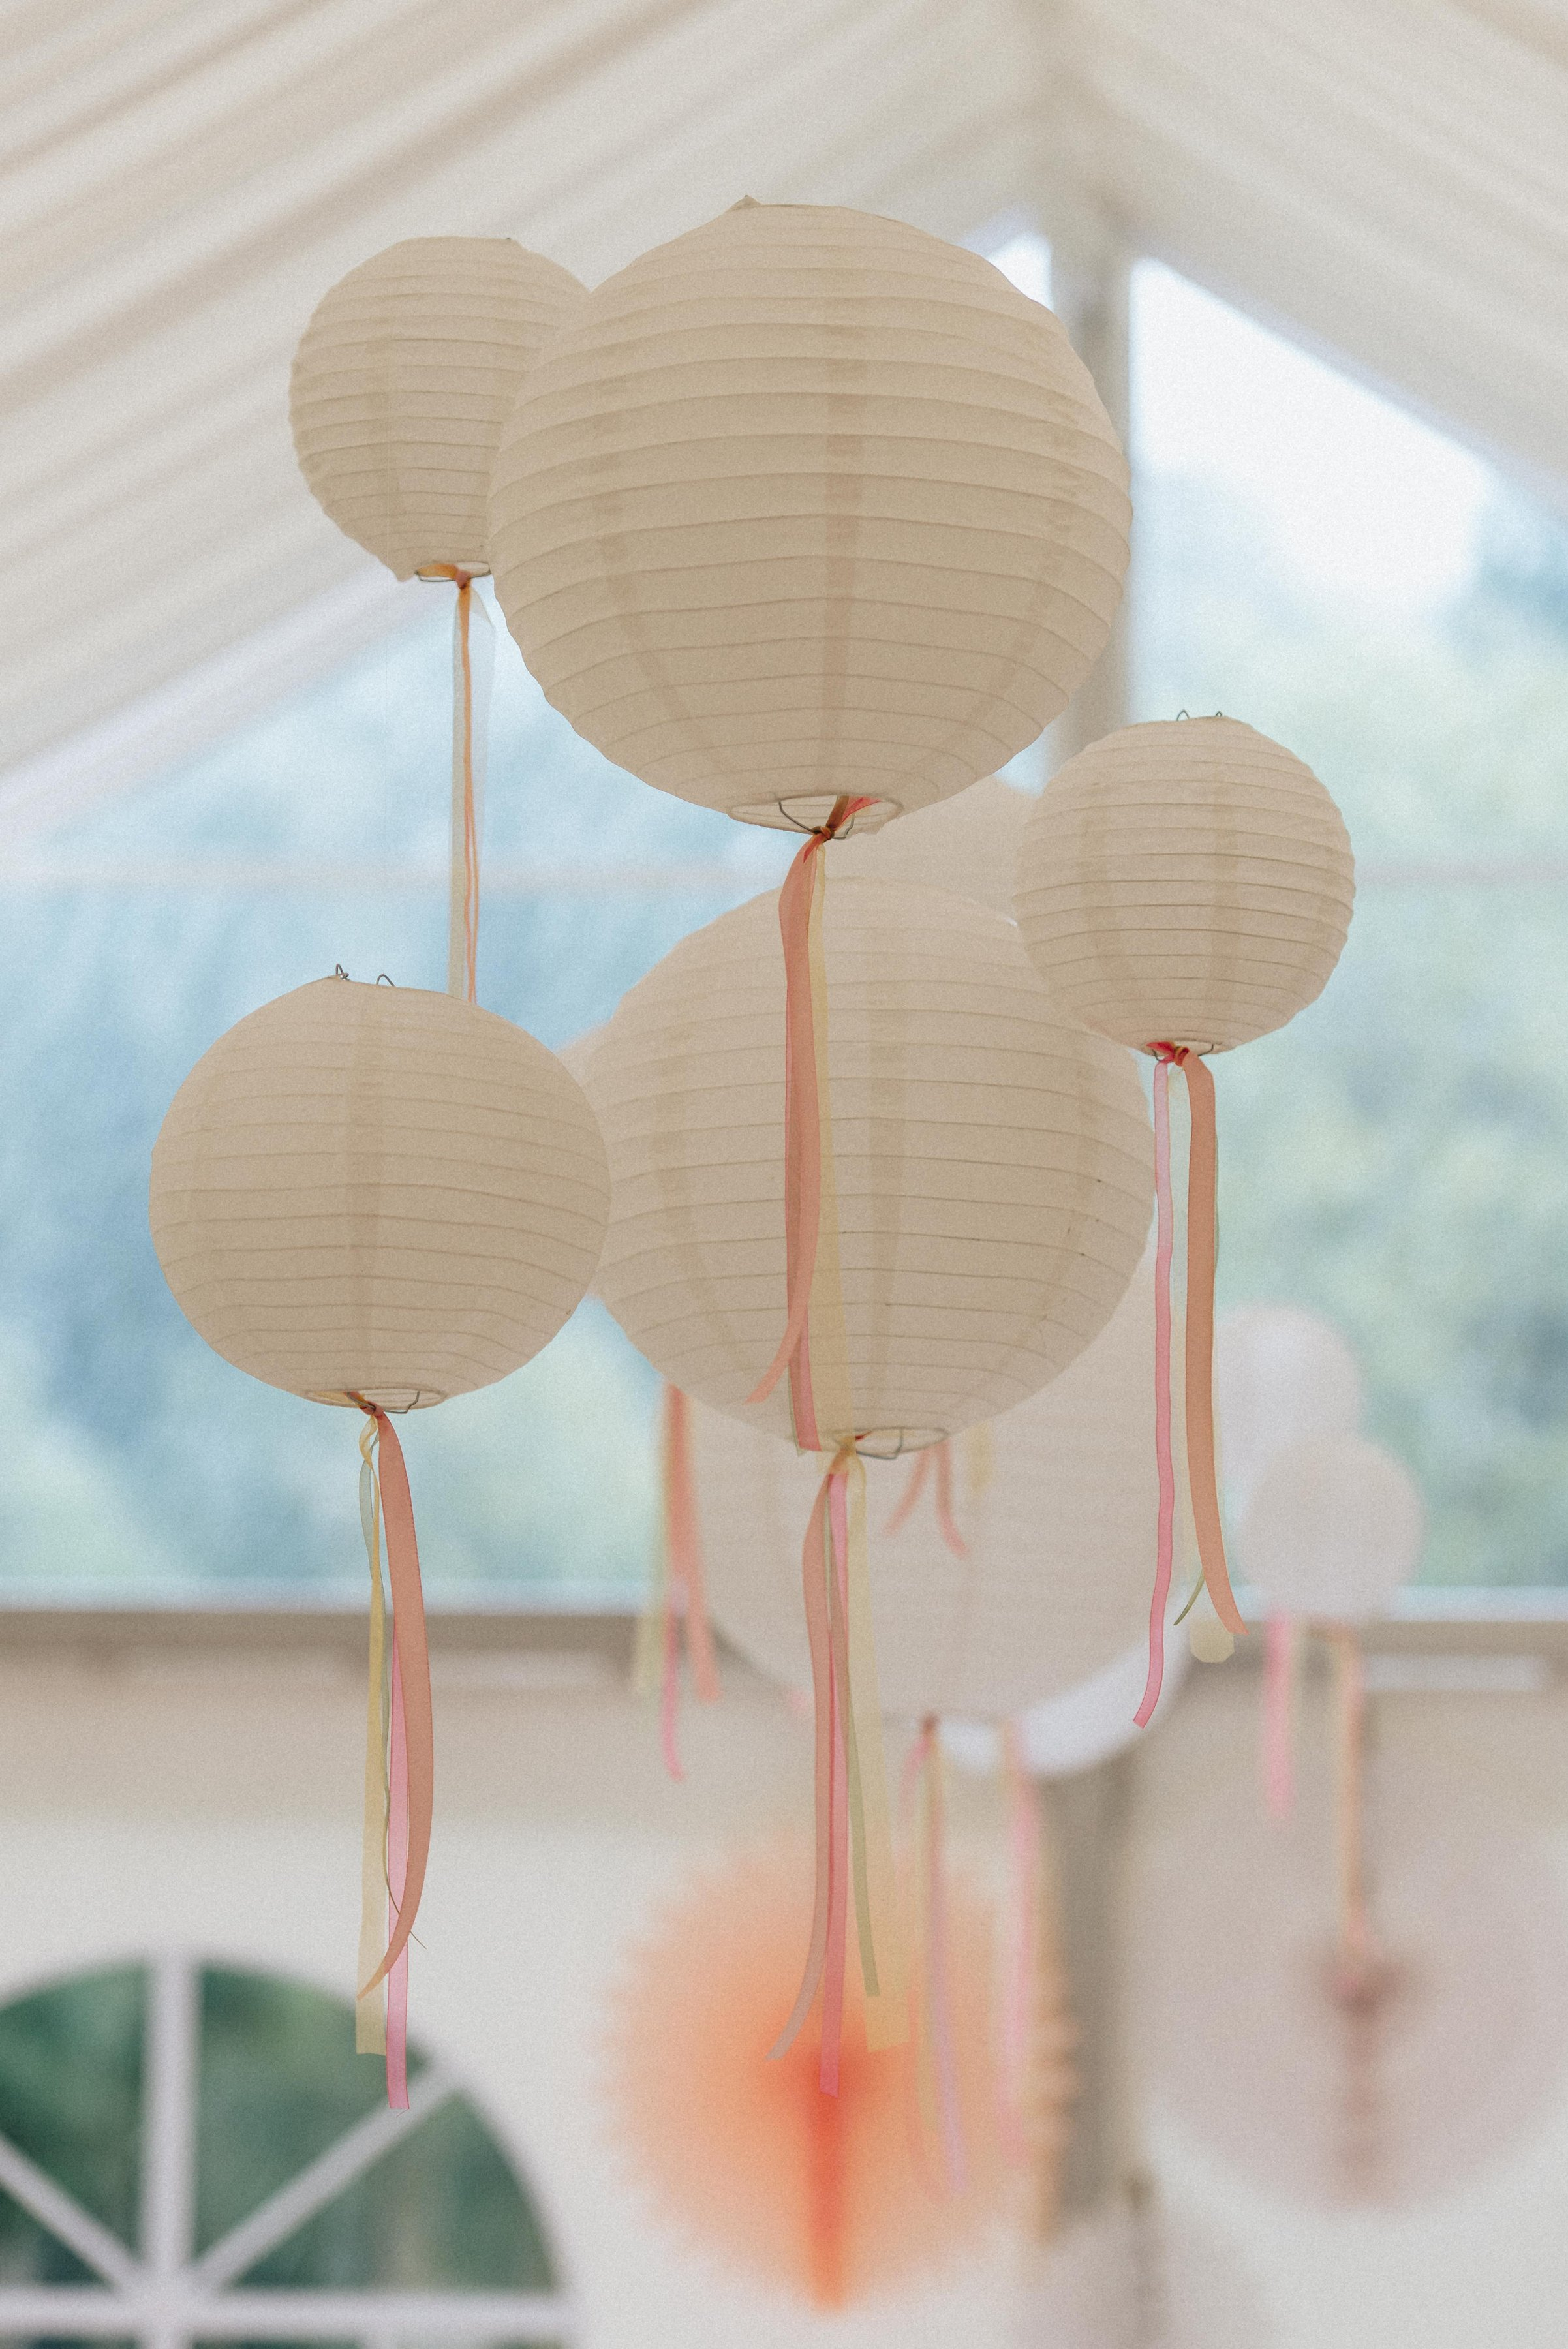 wedding deco Hochzeits Deko Dekoration Lampions mit Bändern Idee: monsieurmuffin Foto: kreativwedding